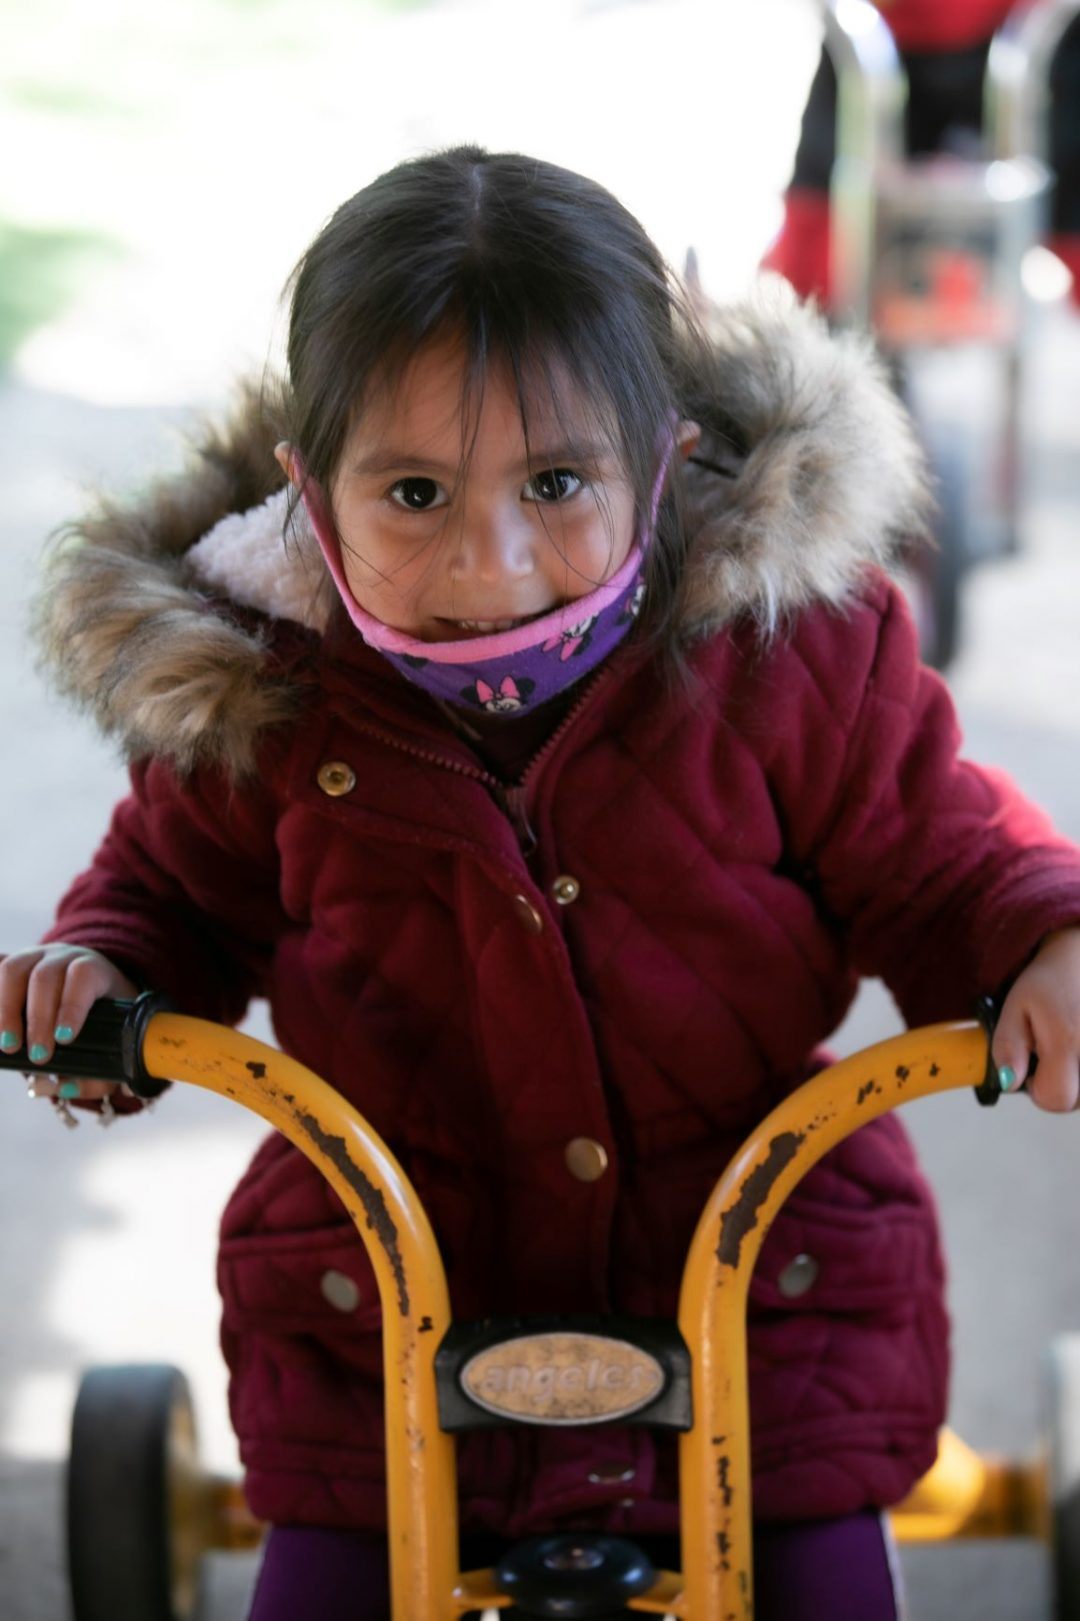 Girl in a red coat riding a tricycle